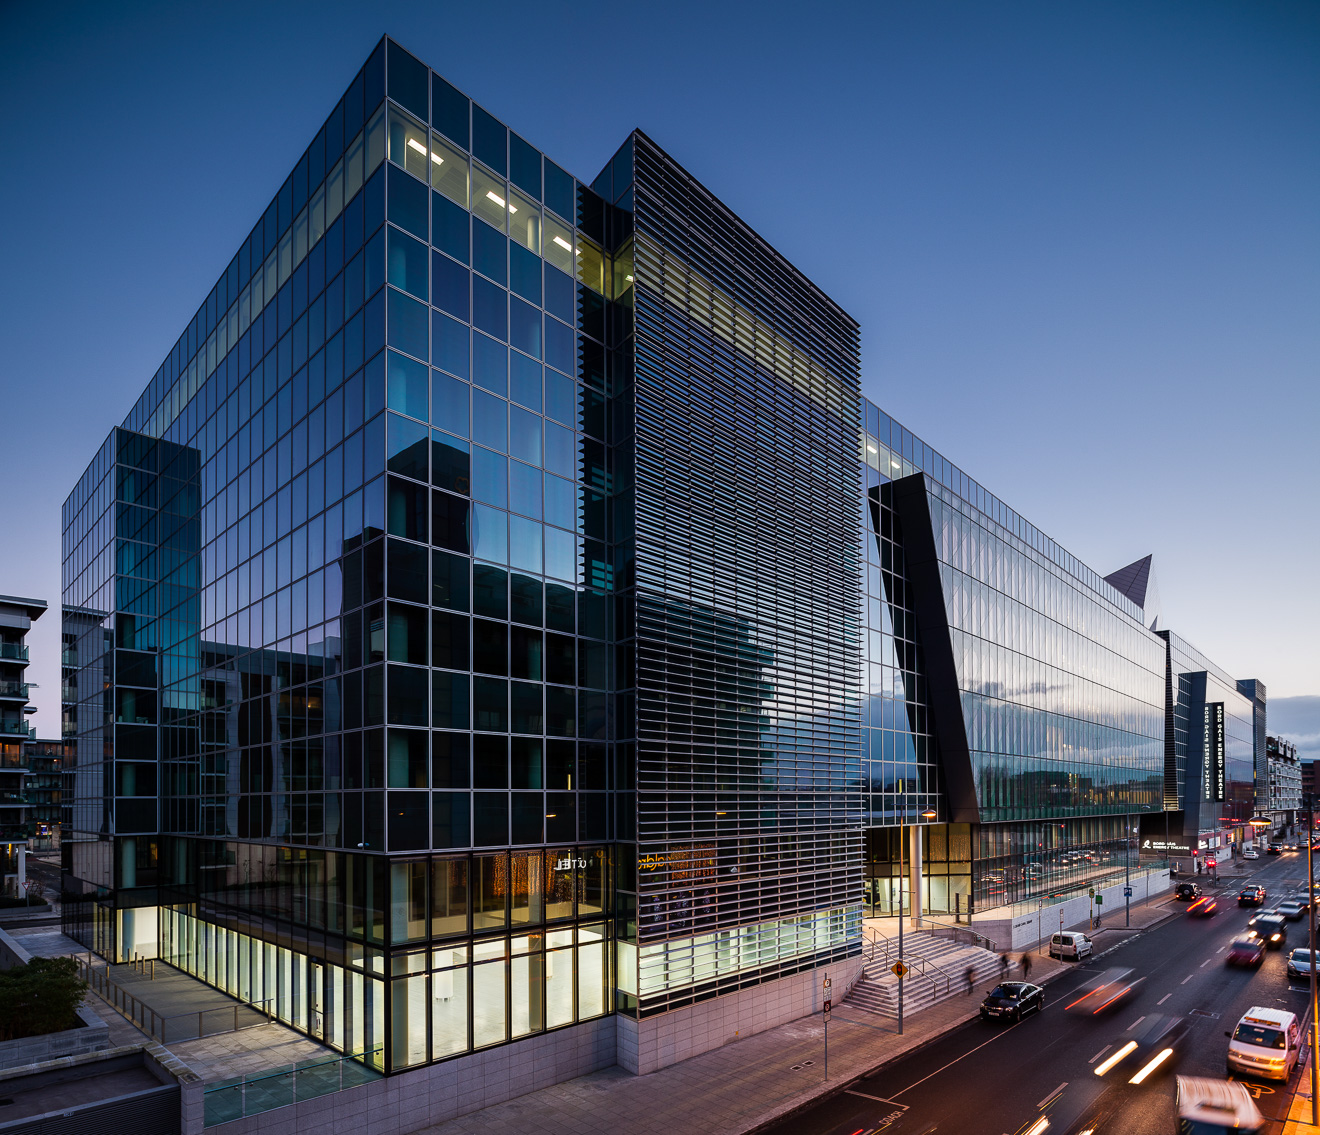 Facebook EMEA Headquarters   Grand Canal Square is a development of office buildings setting a landmark standard in environmental sustainability for the Irish commercial sector.